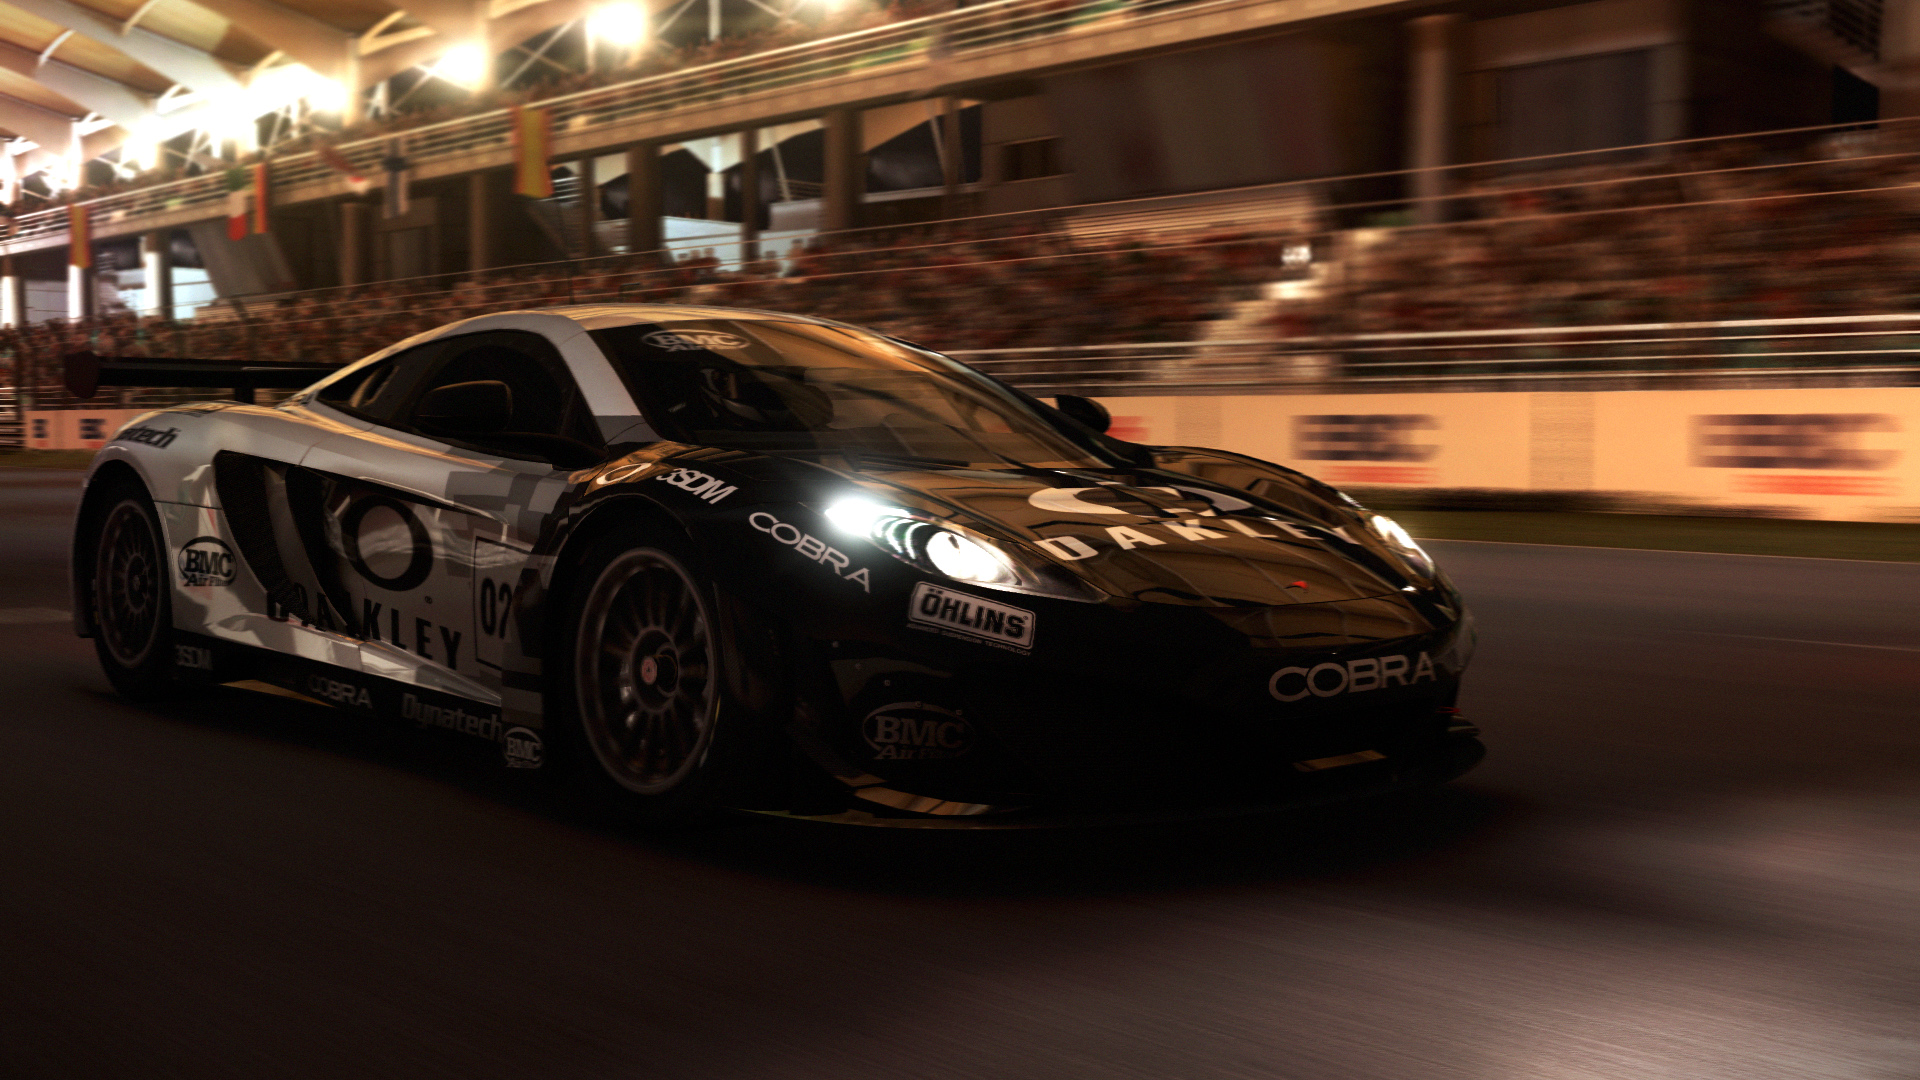 GRID Autosport Complete Setup Free Download